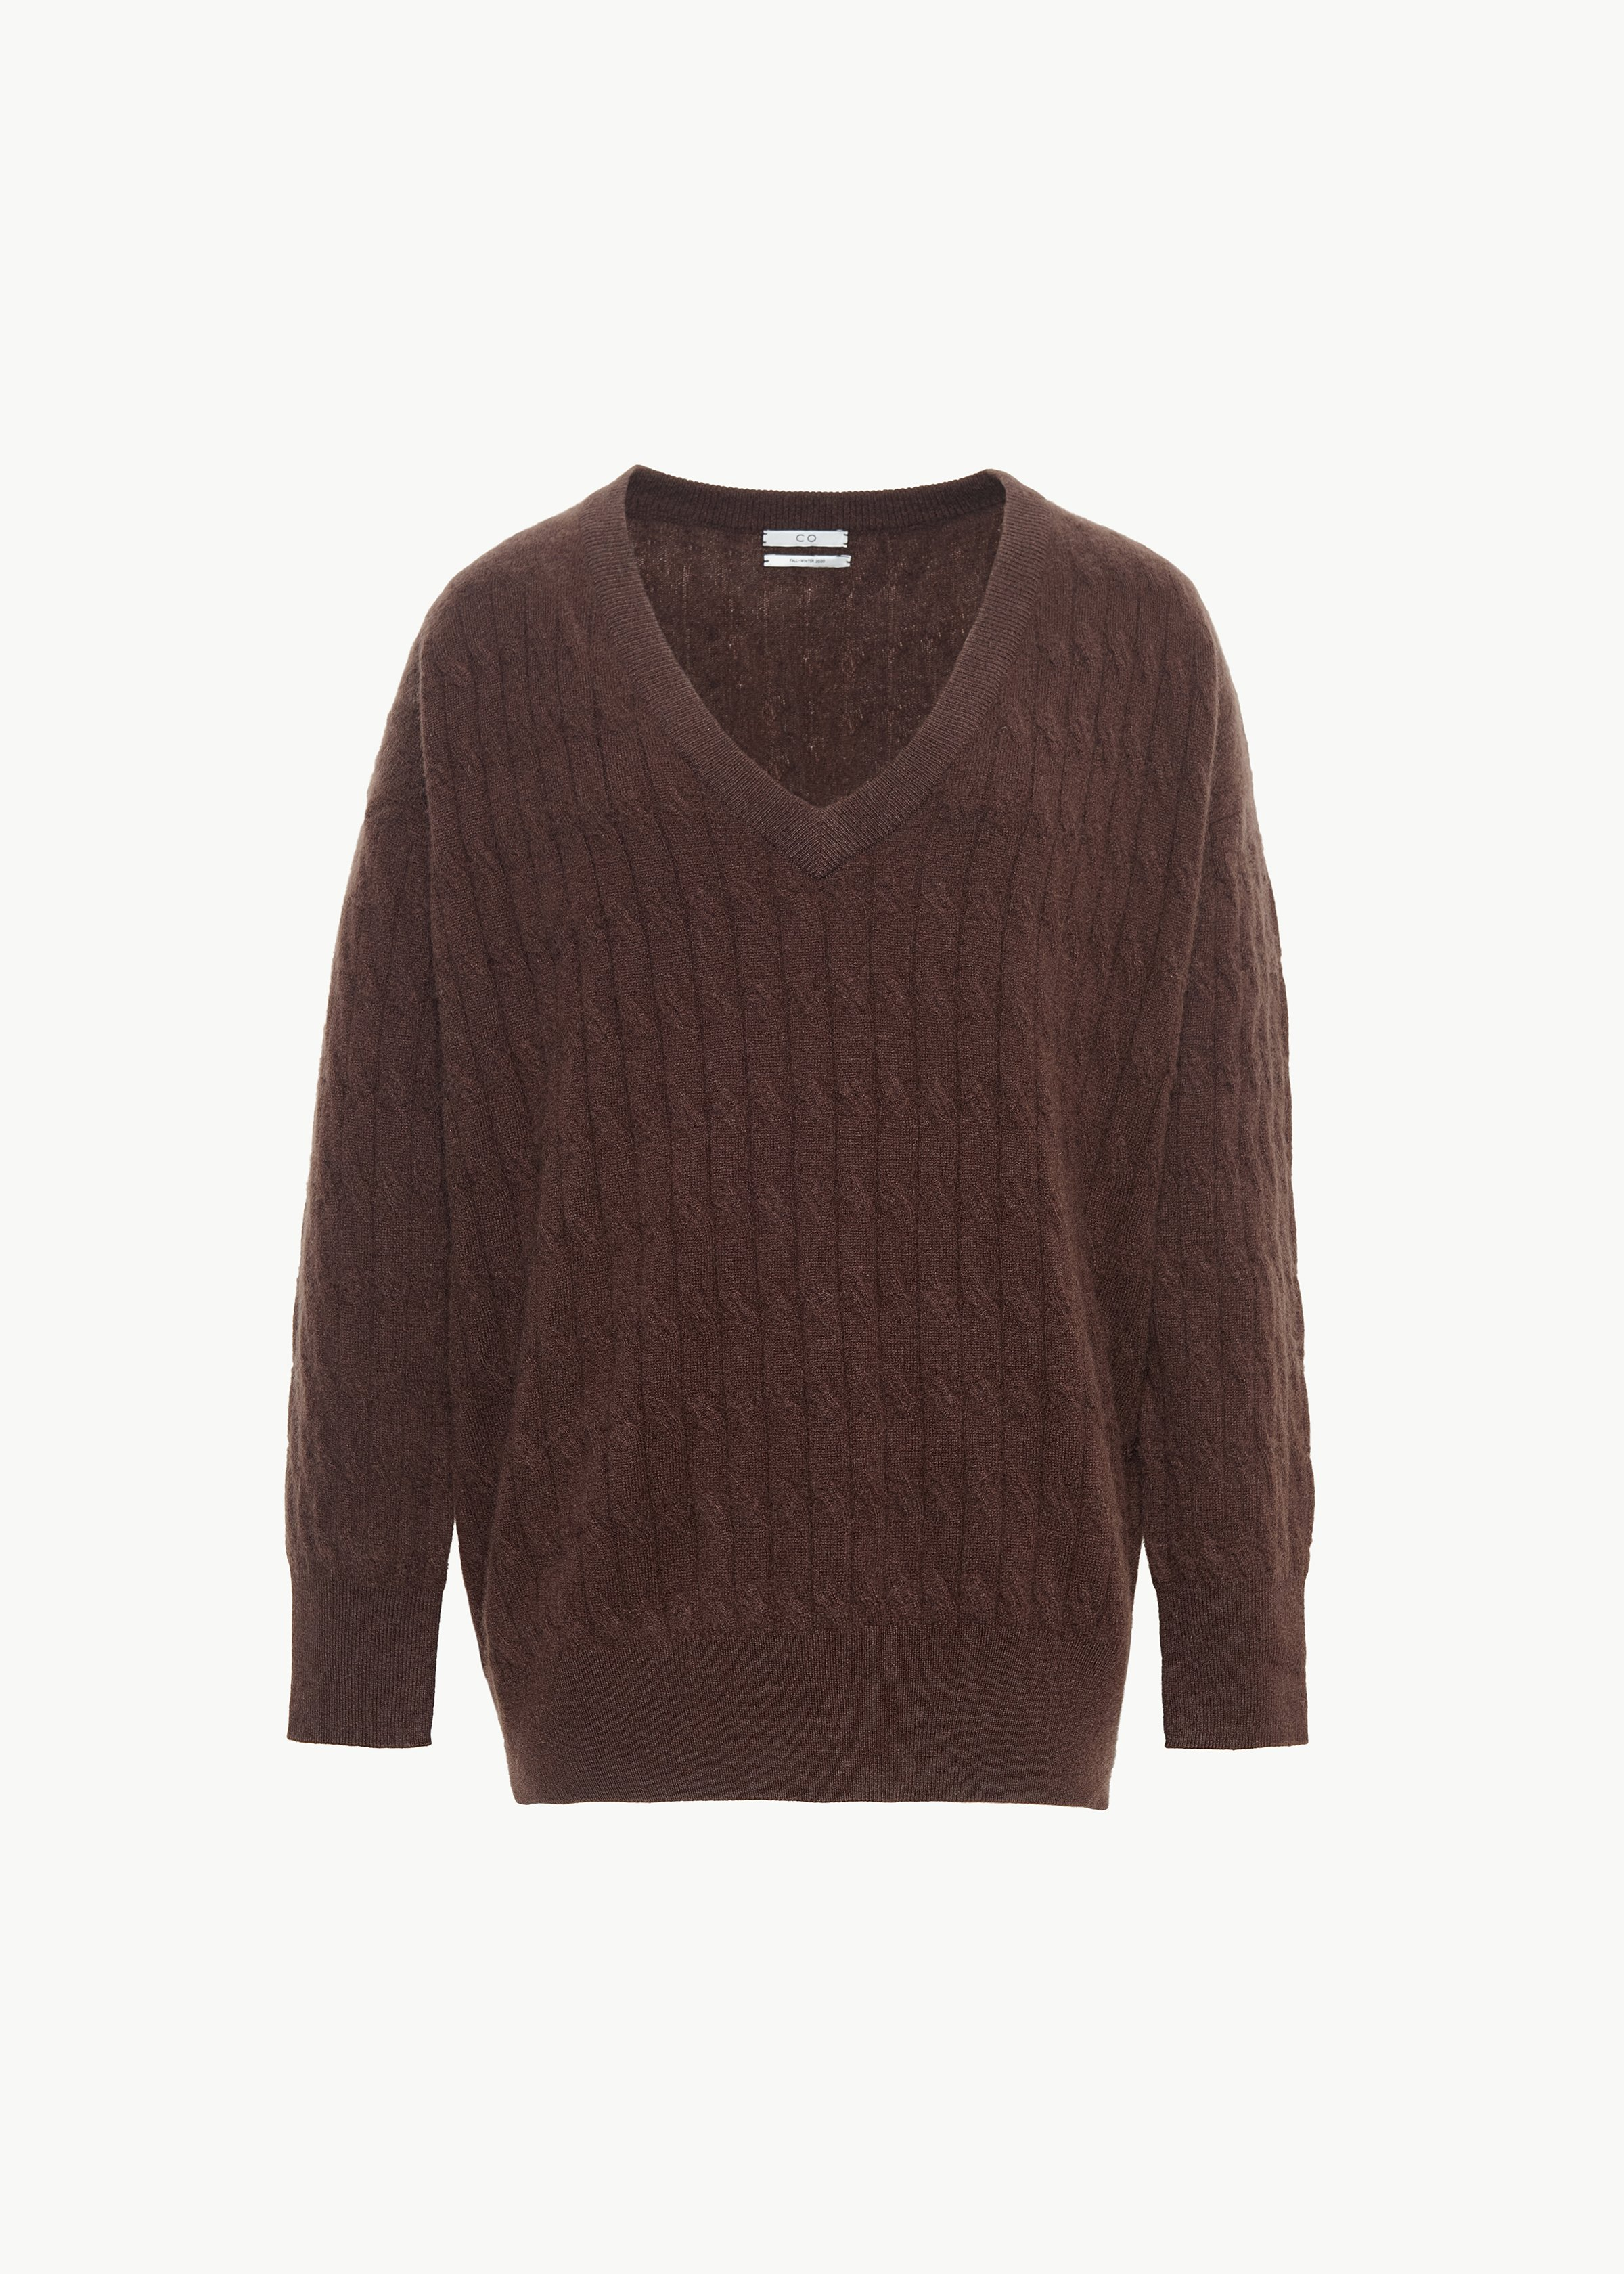 Cable Knit V Neck Sweater in Cashmere - Copper in Chocolate by Co Collections